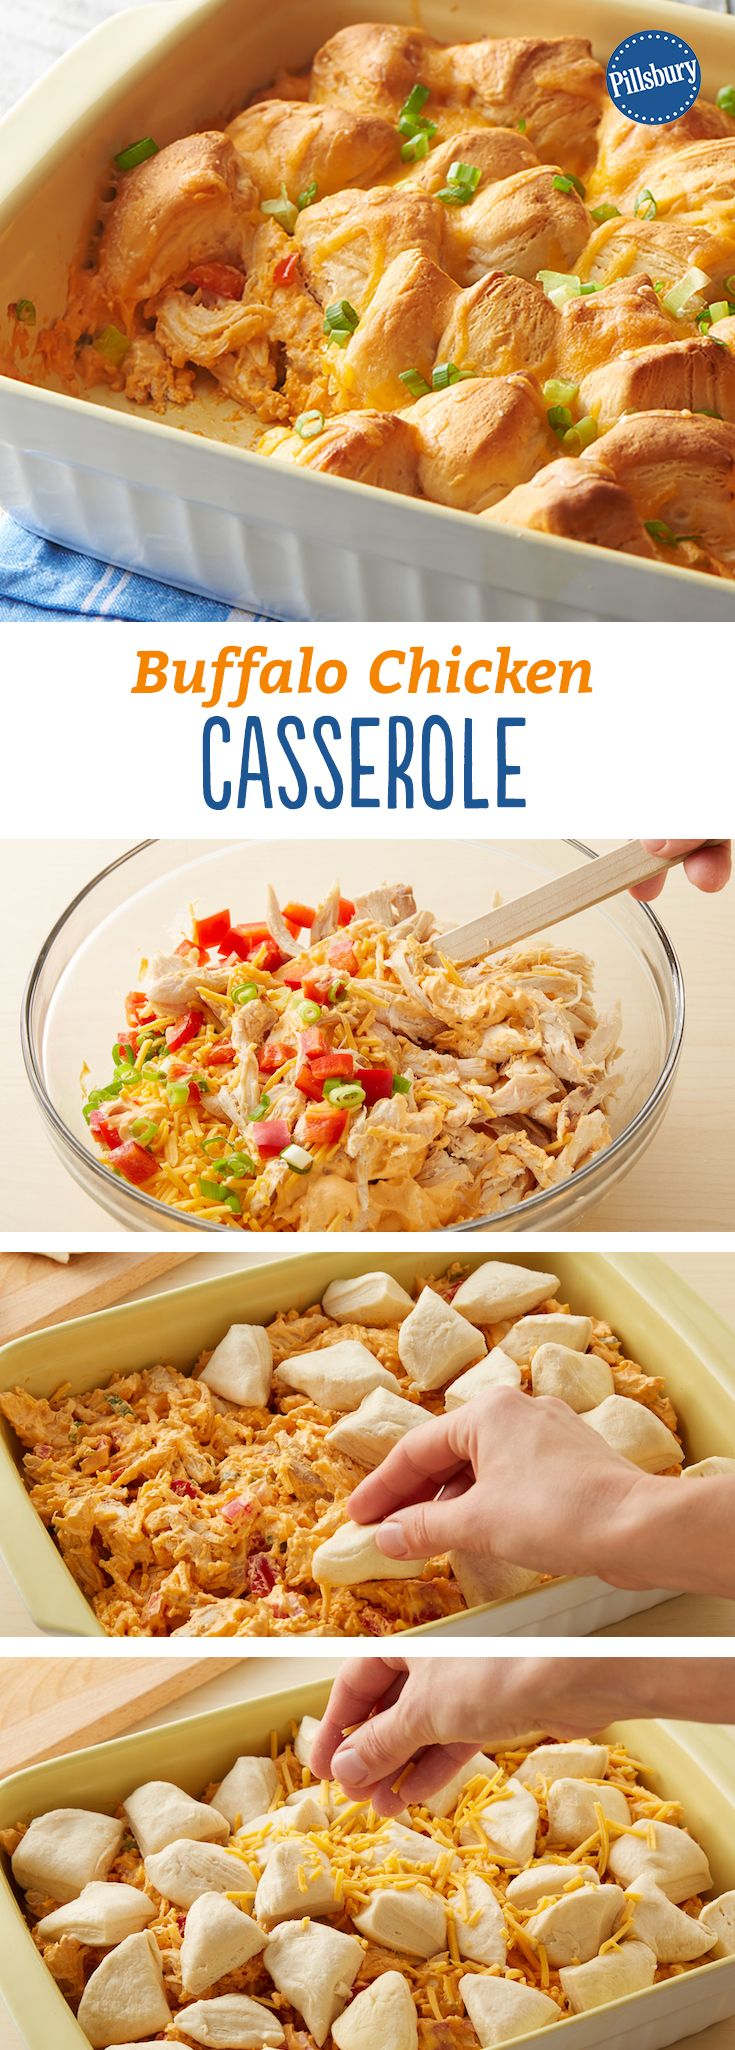 This creamy and craveable Buffalo chicken casserole doubles as a game day app (with built-in dippers!) or an easy weeknight dinner.